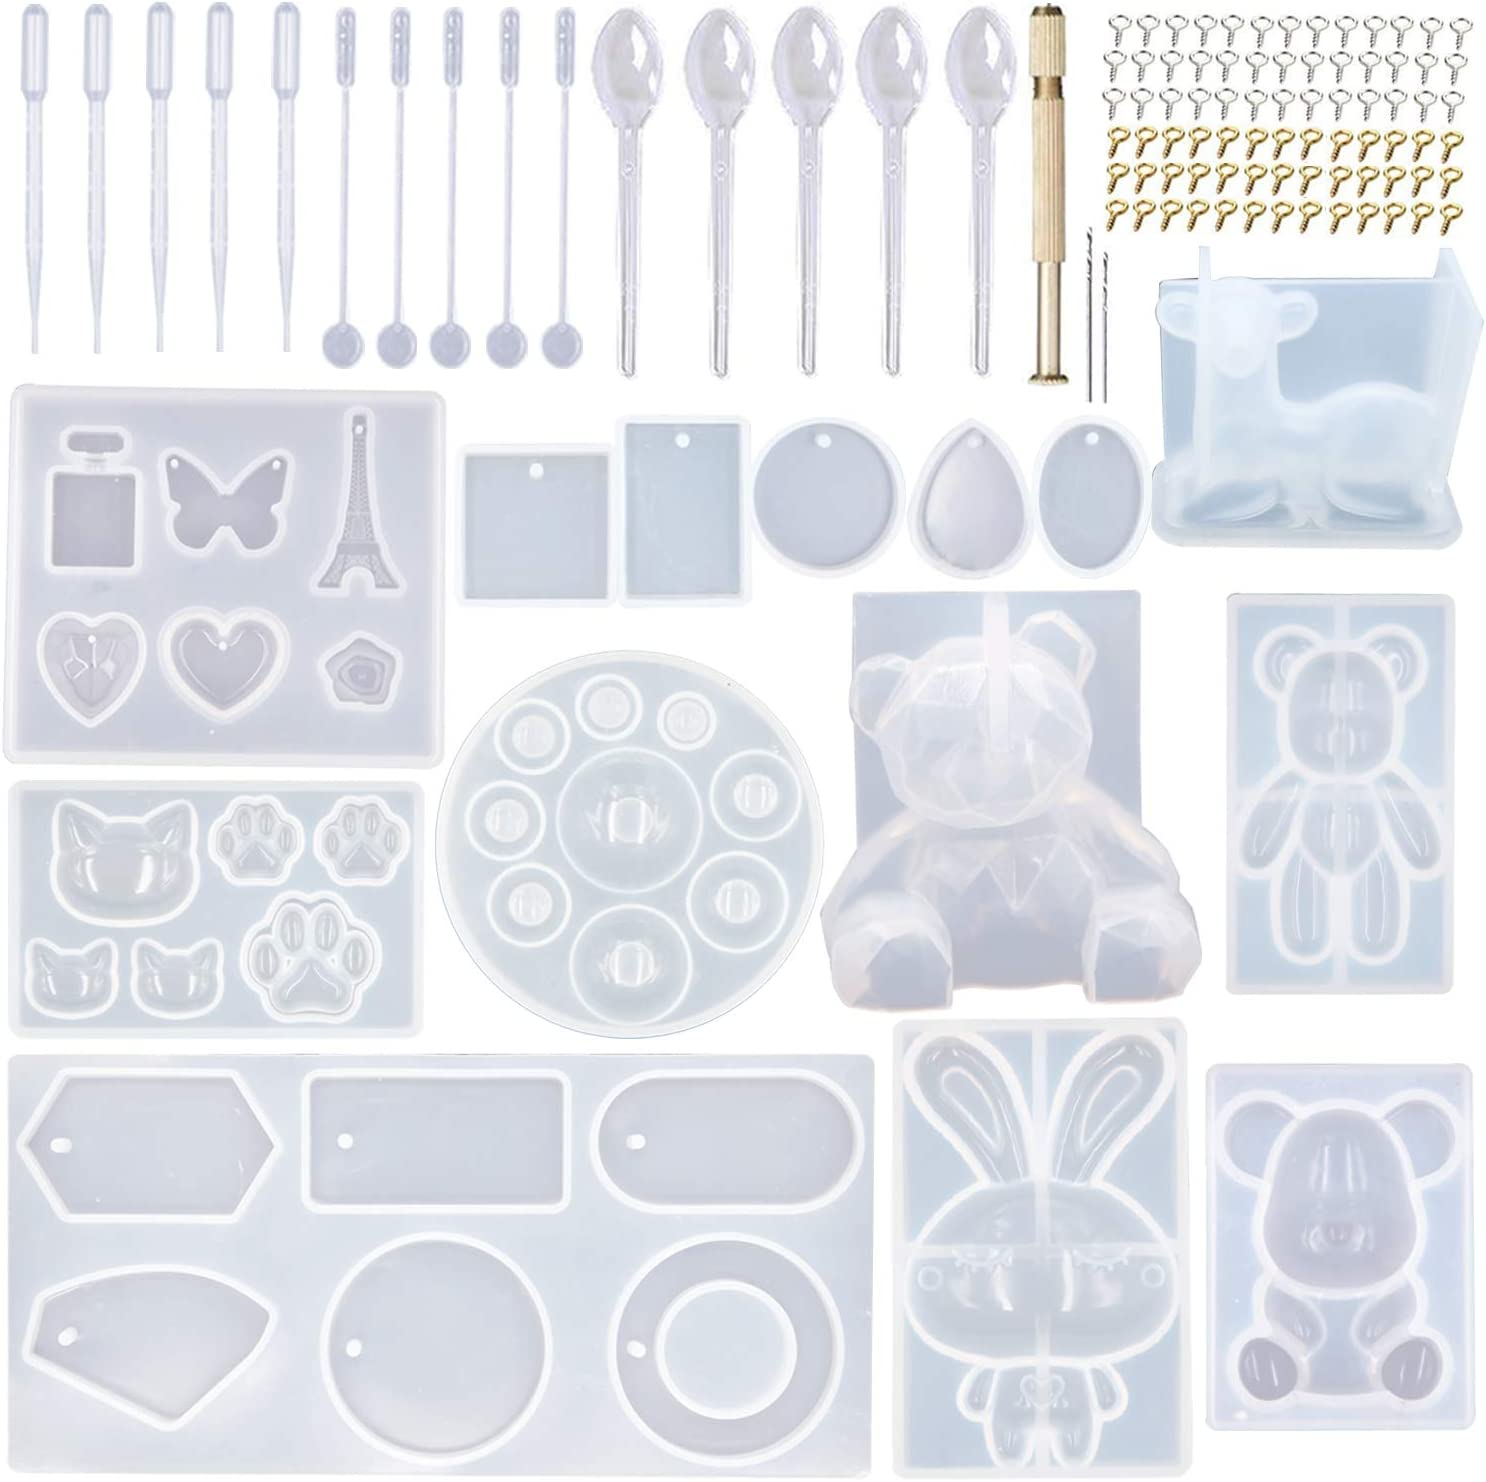 EuTengHao 132Pcs Animal Silicone Molds DIY Resin Casting Molds Kit Contains 3 Bears Resin Molds 3D Deer Rabbit Cat Paw Mold Necklace Pendant Molds Time Gem Eiffel Tower Jewelry Crystal Resin Mold